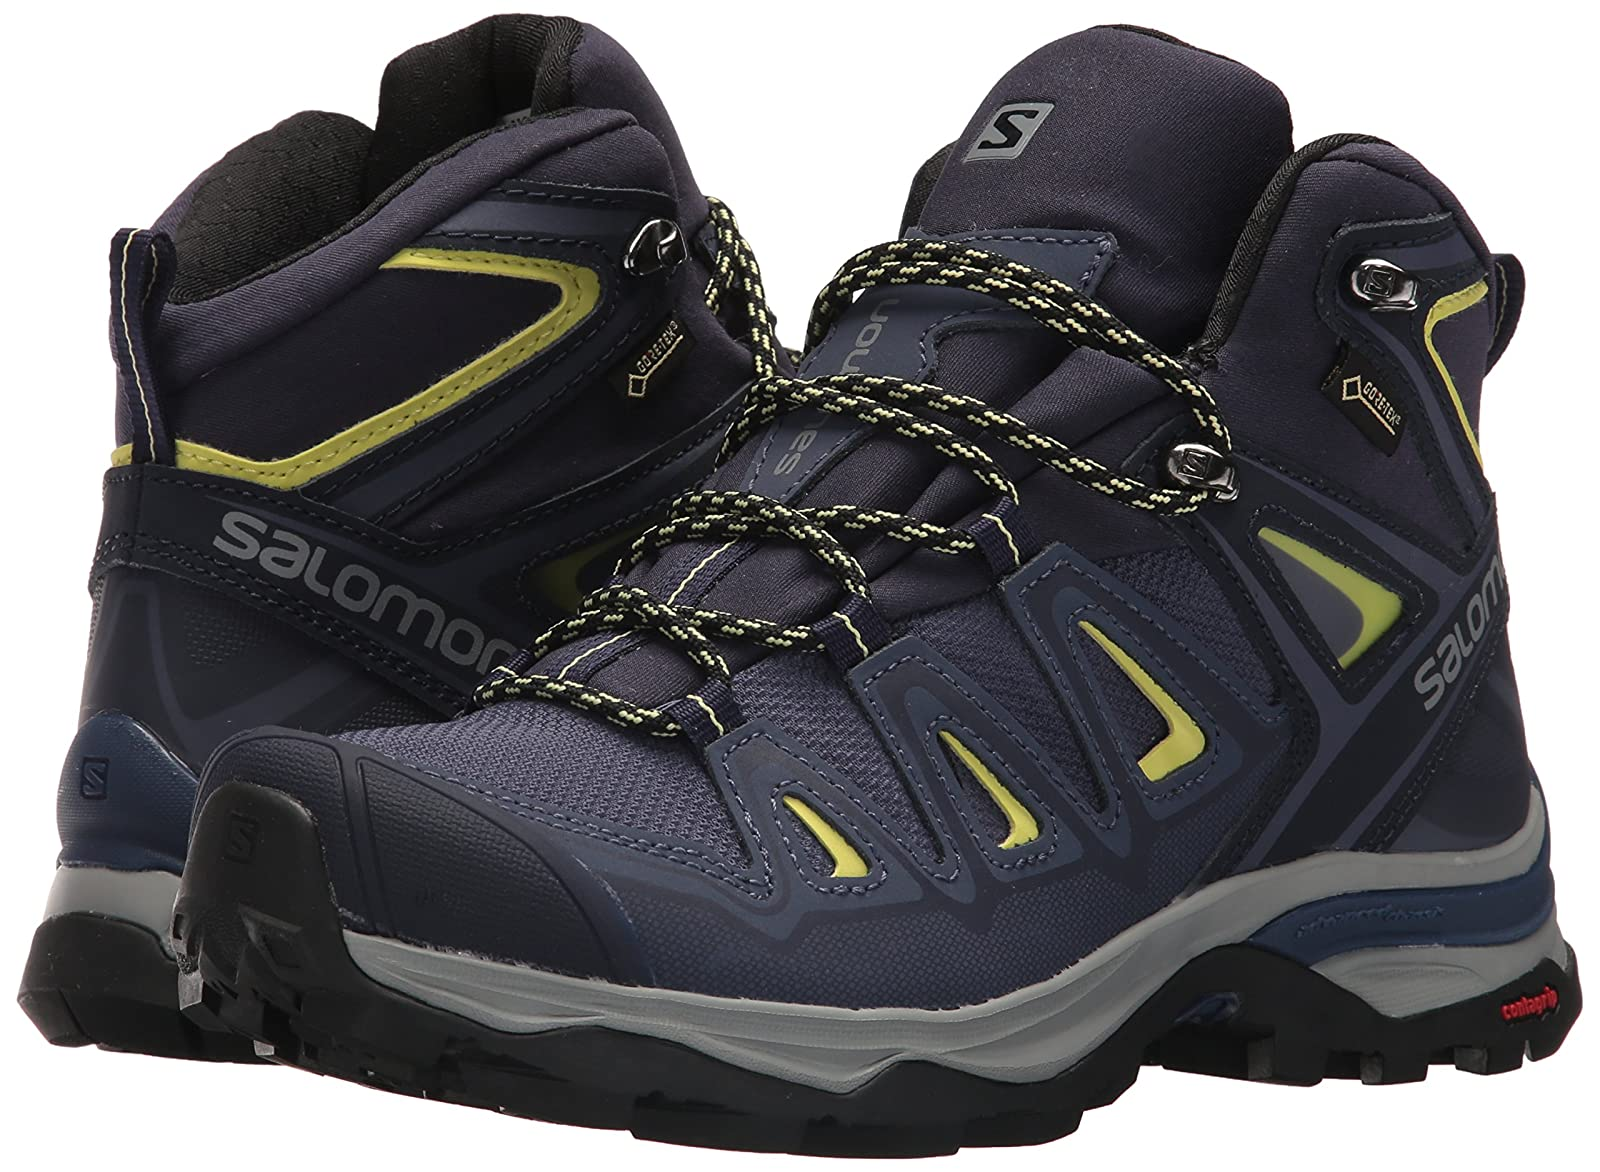 Salomon Women's X Ultra 3 Mid GTX W Hiking Boot 401346 - 6